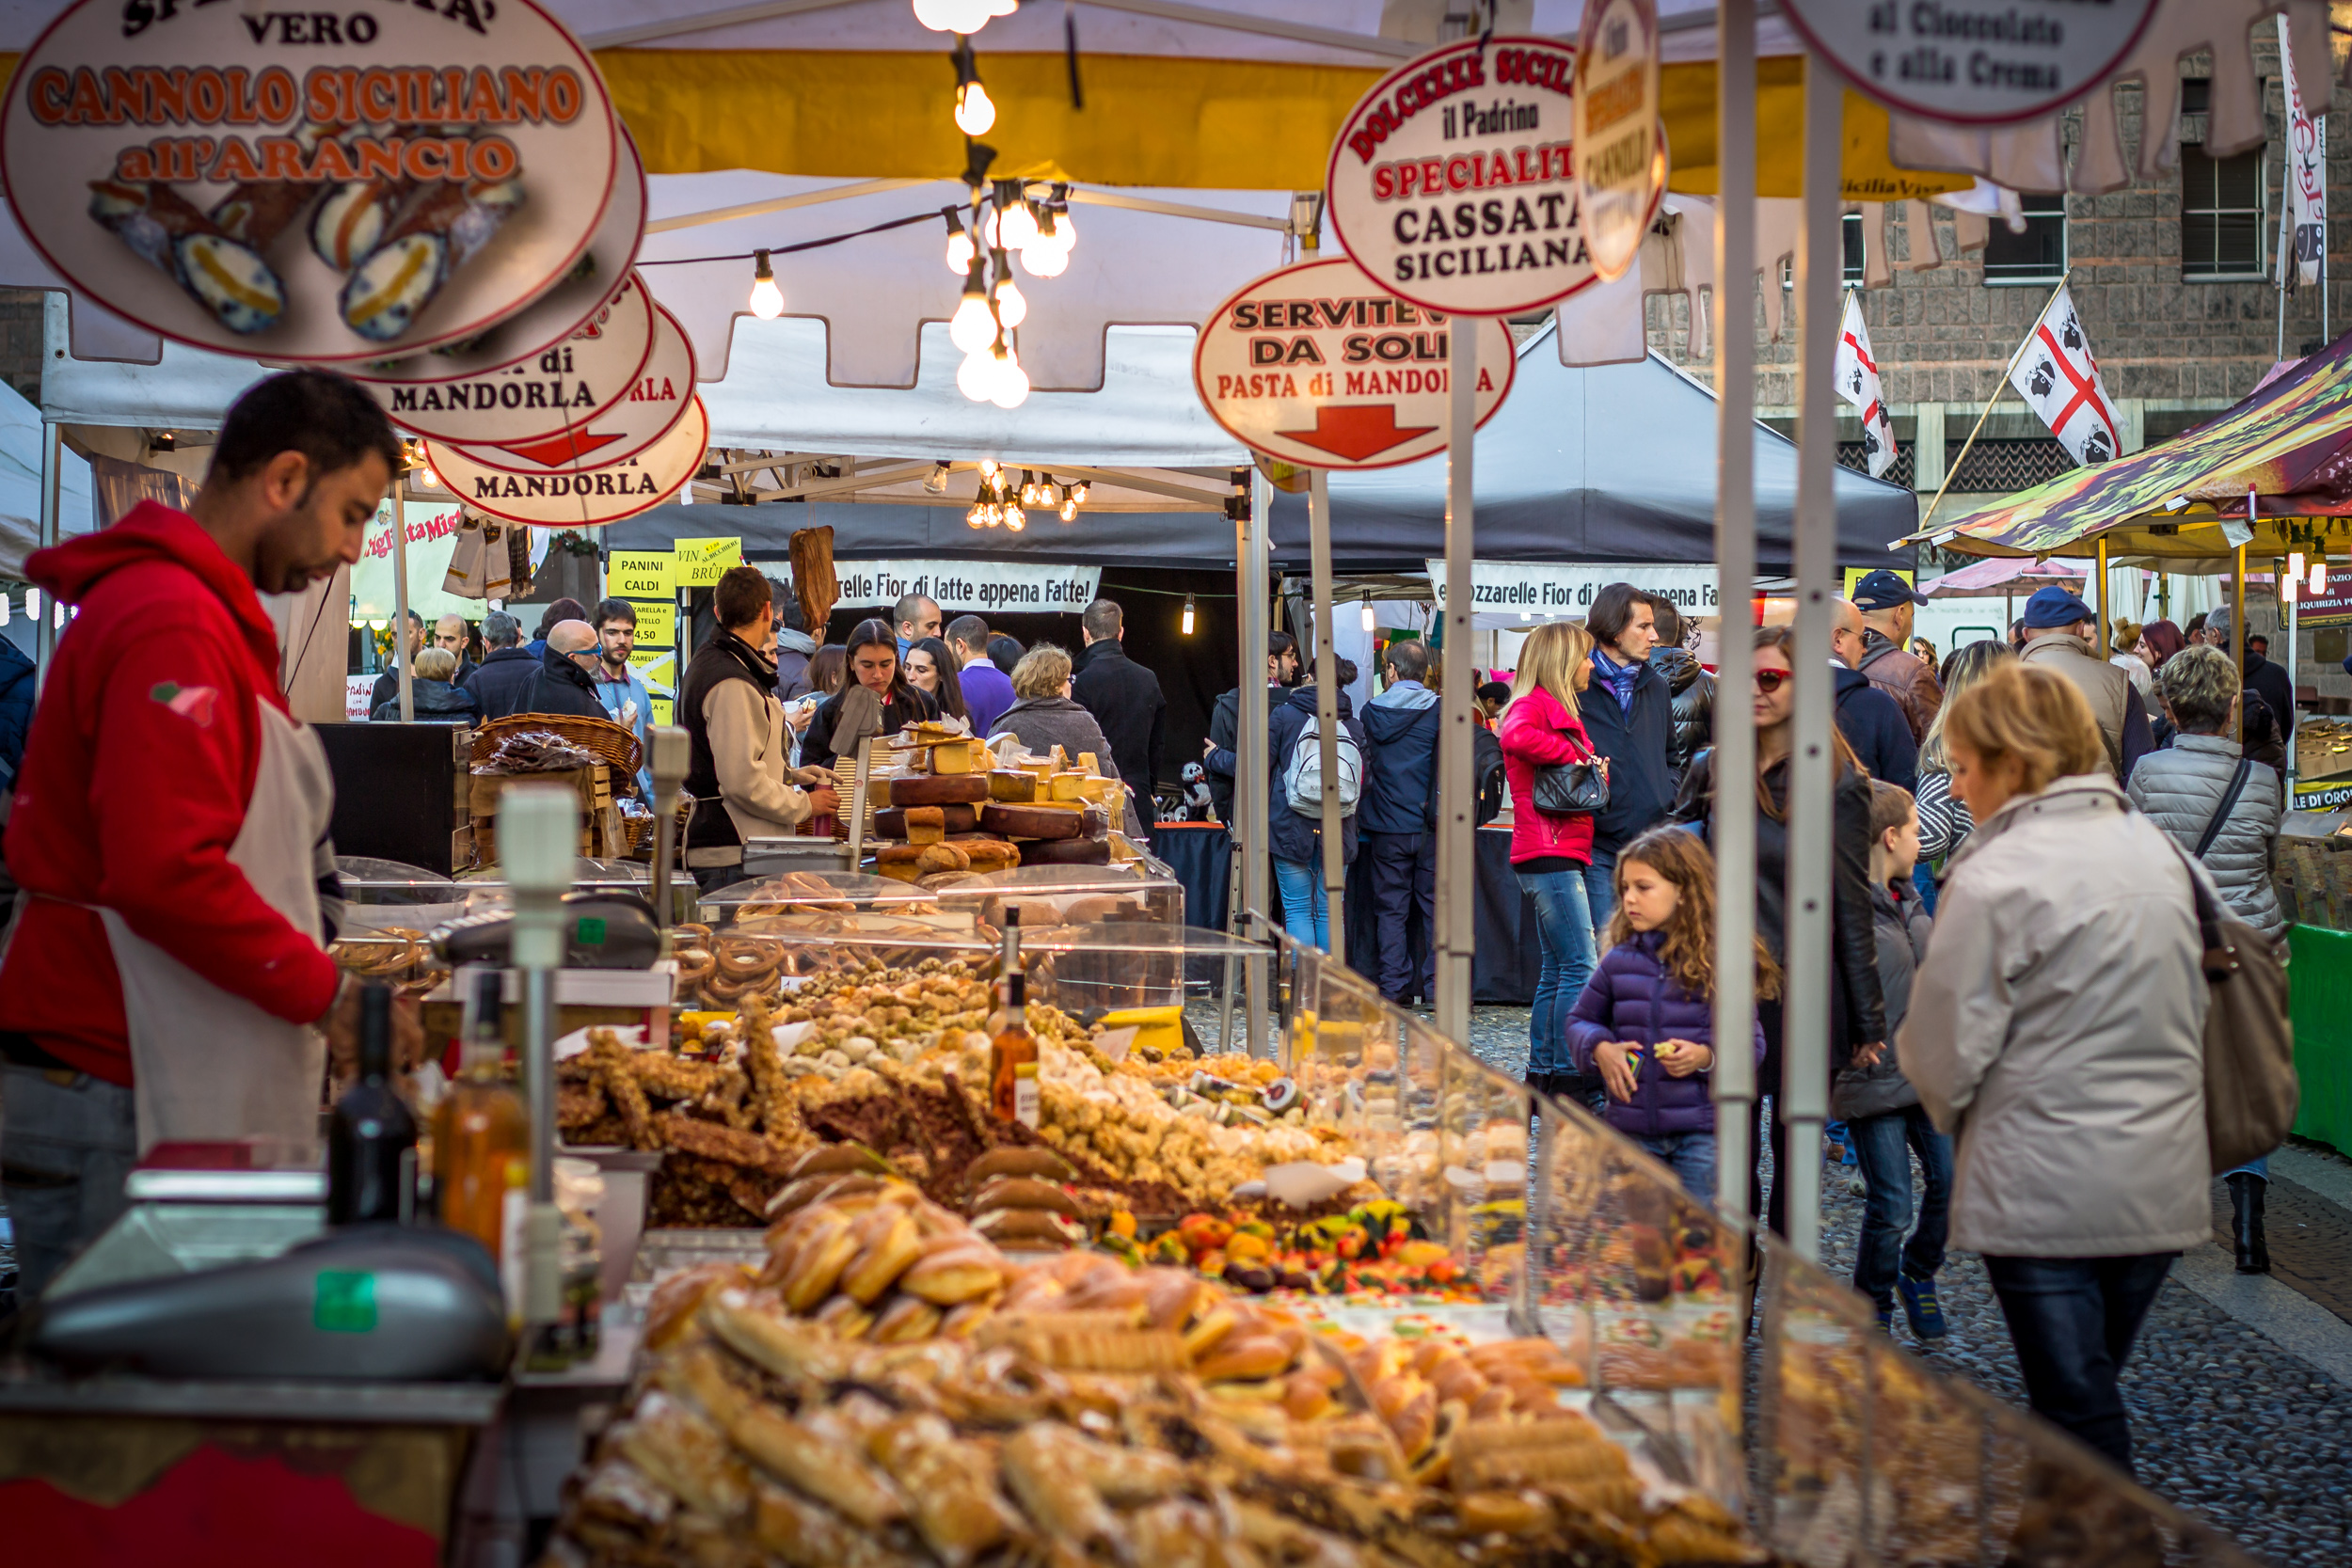 Even in market squares payment cards are often accepted but customers prefer cash.